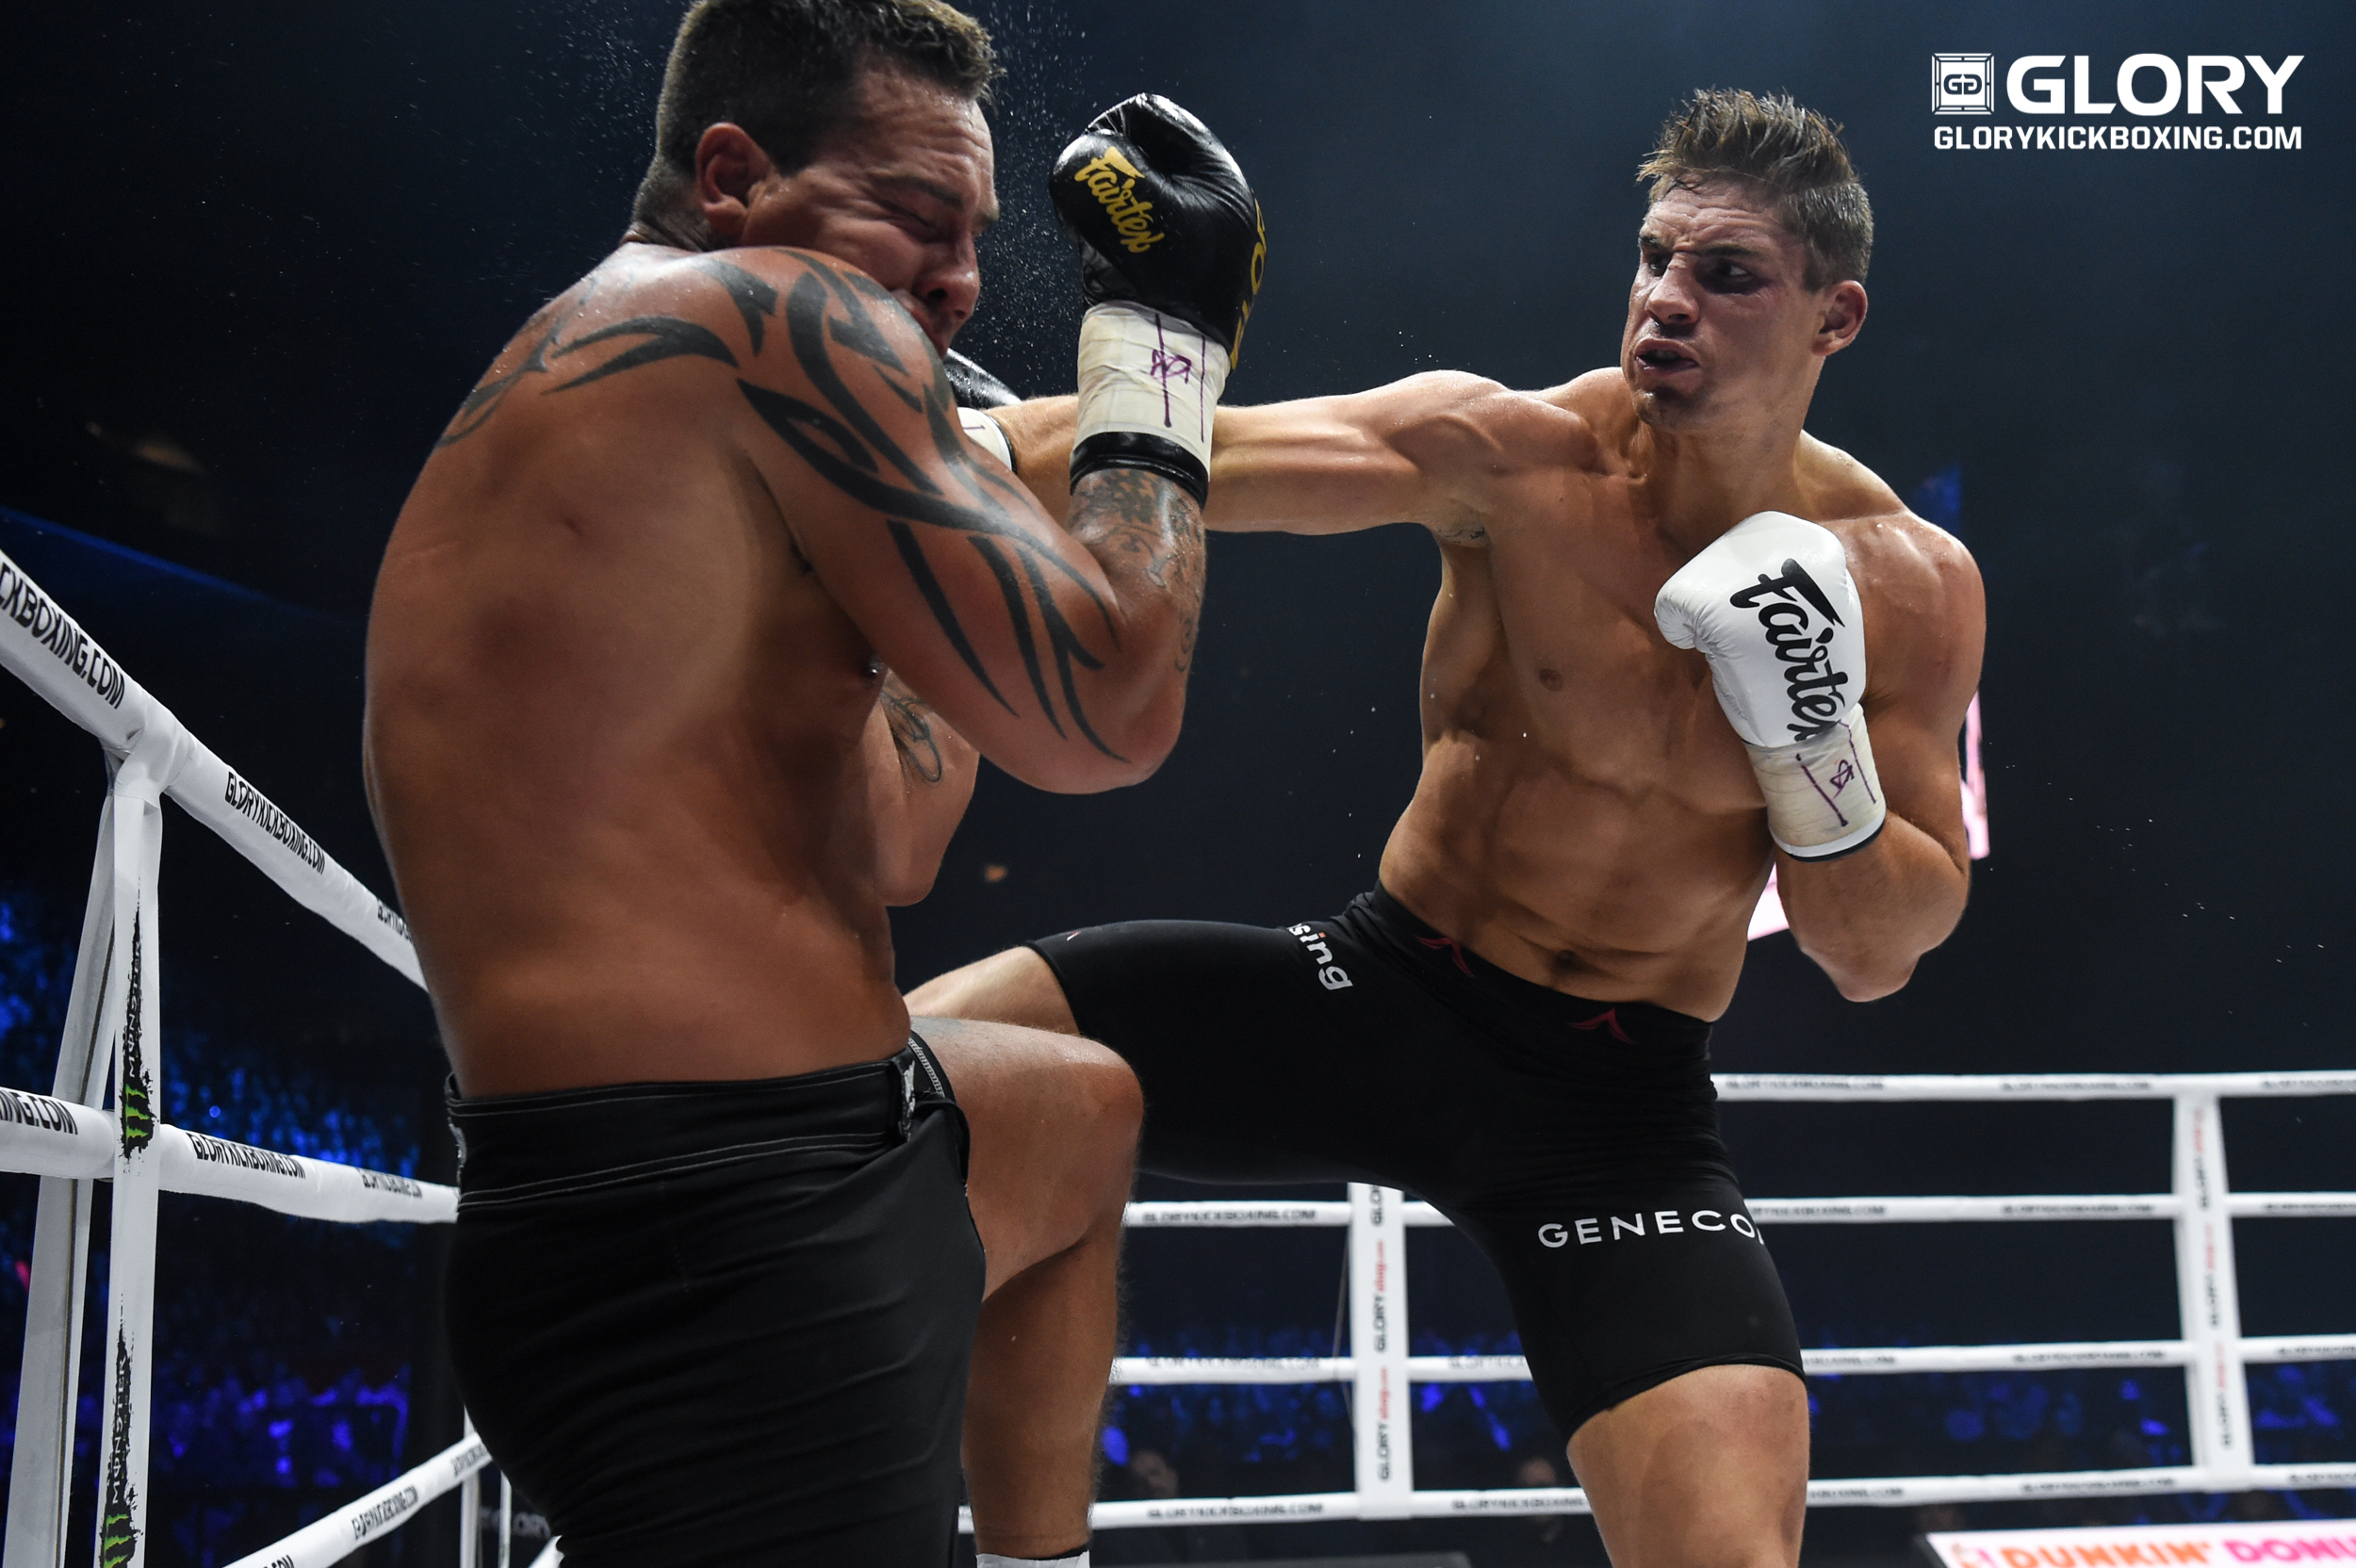 Verhoeven cruises past Inocente, earns eighth title defense